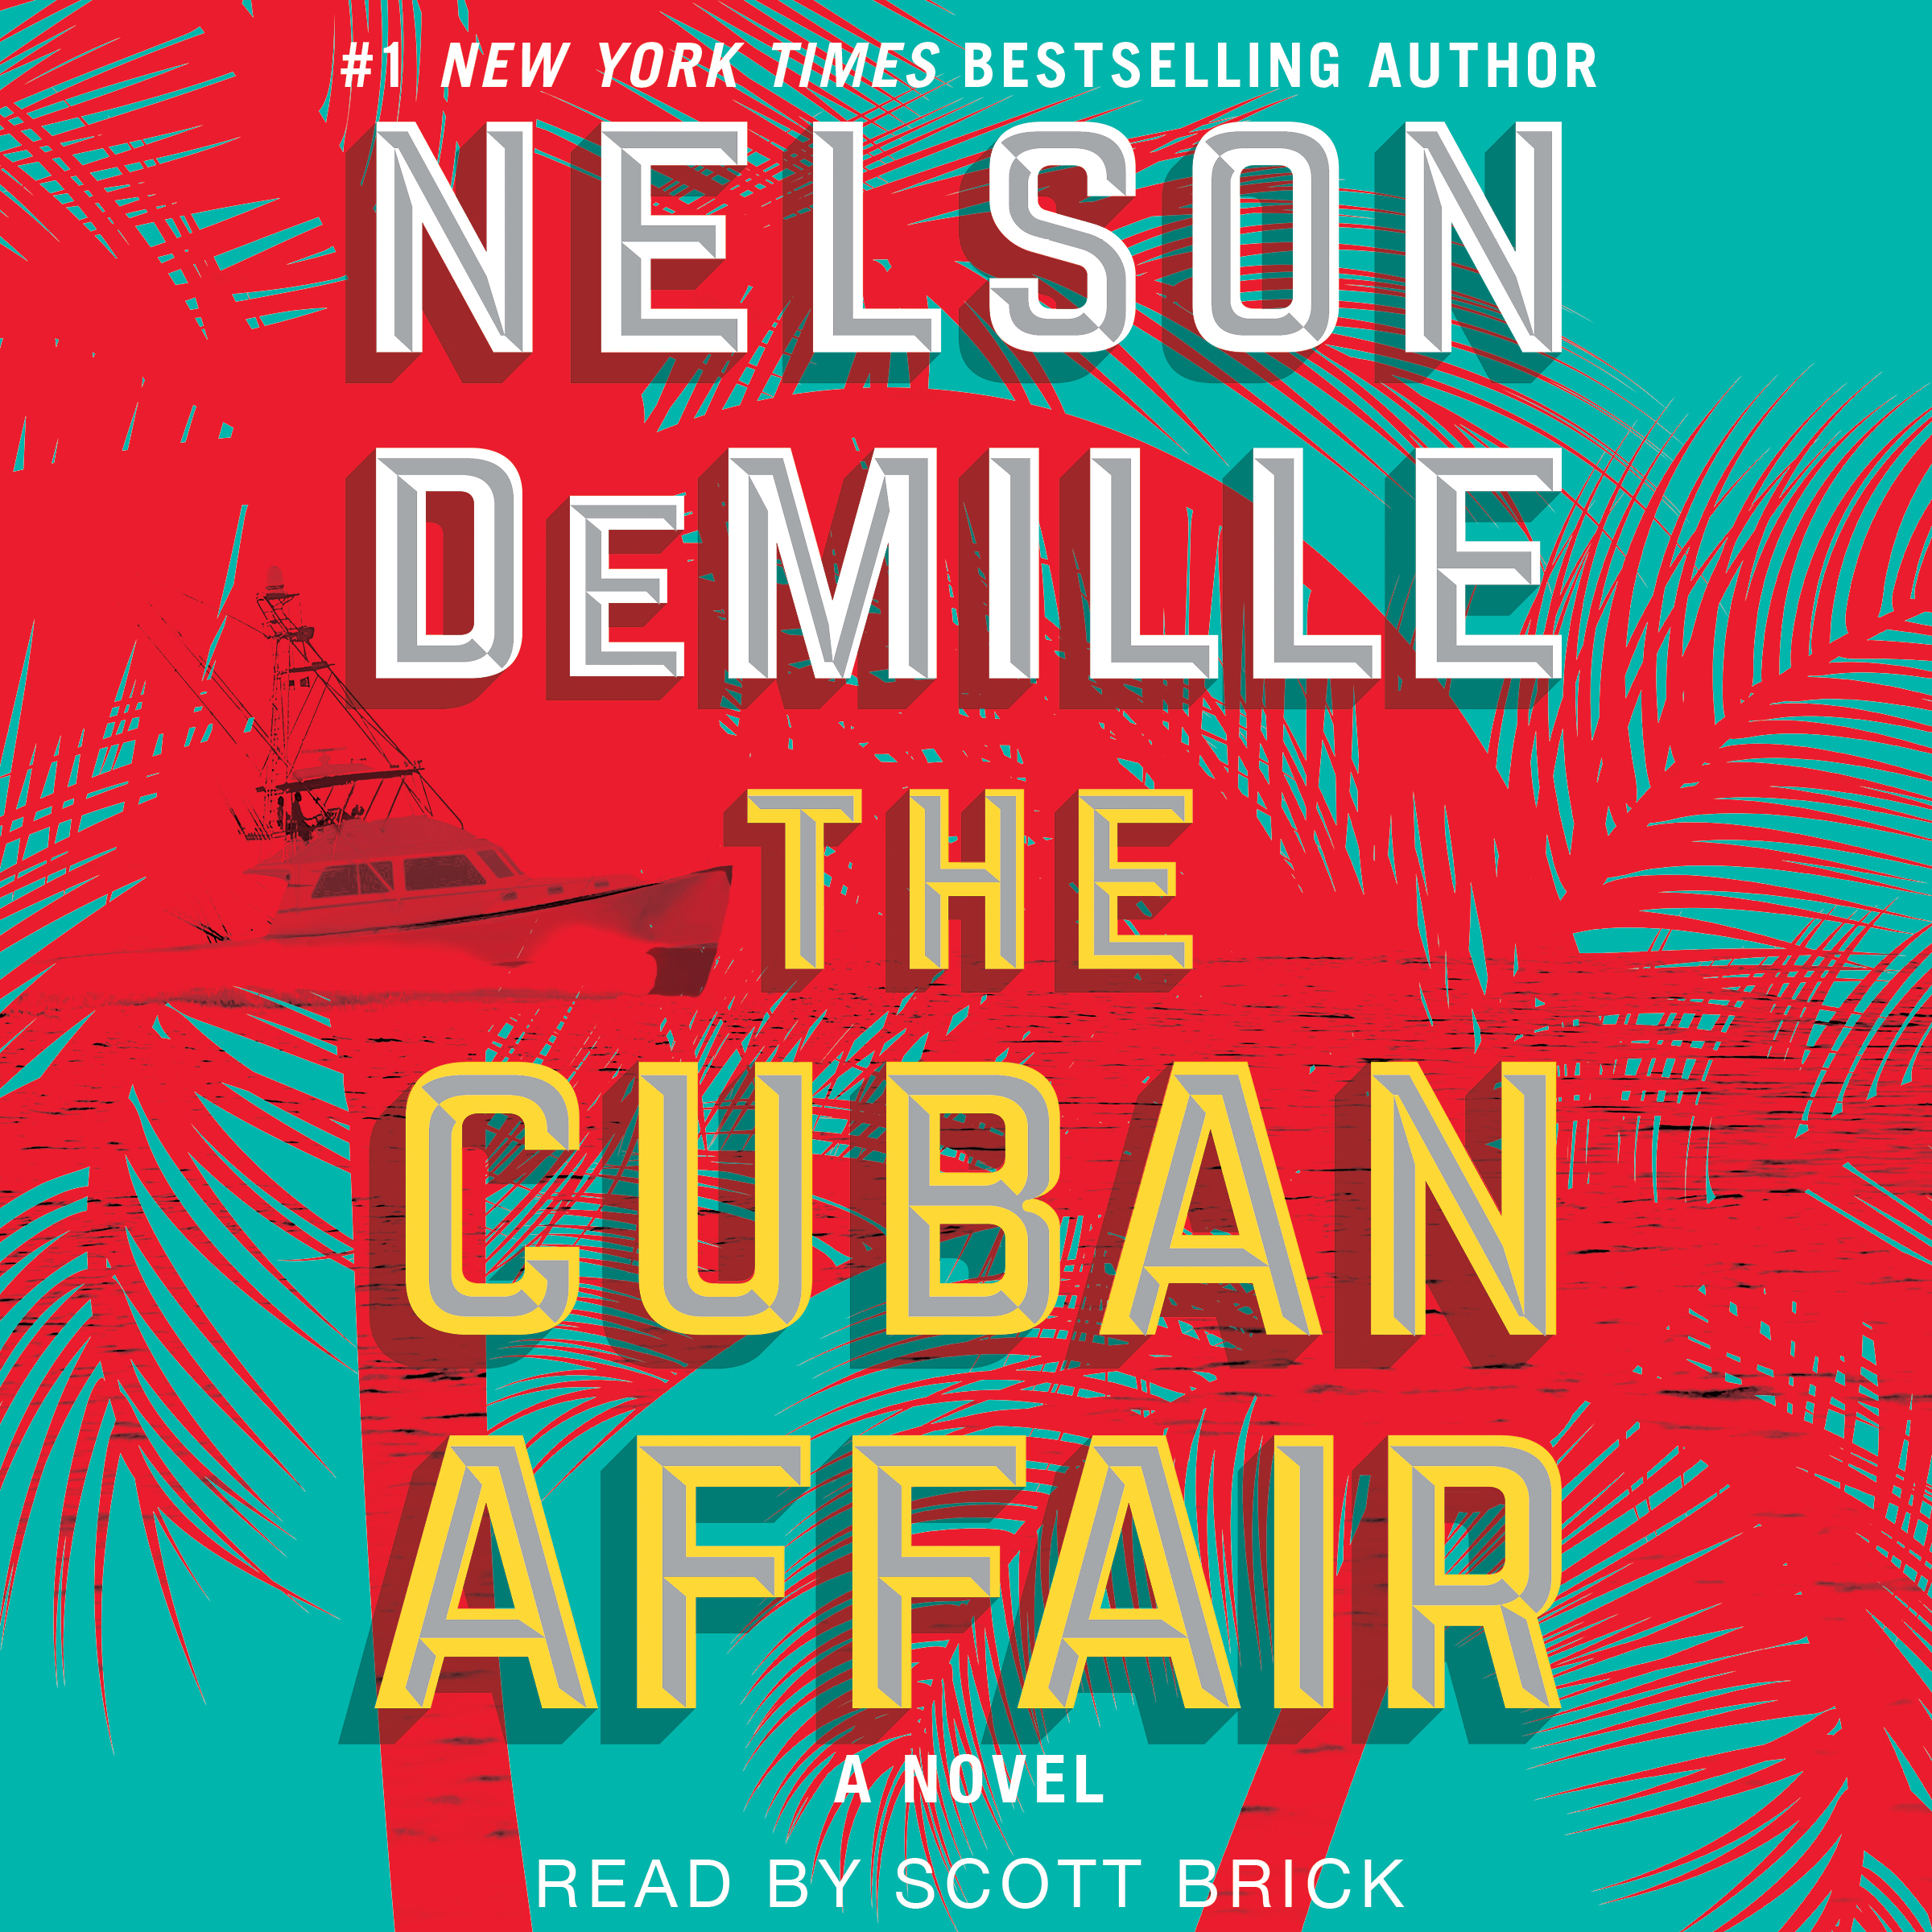 The cuban affair 9781508241348 hr